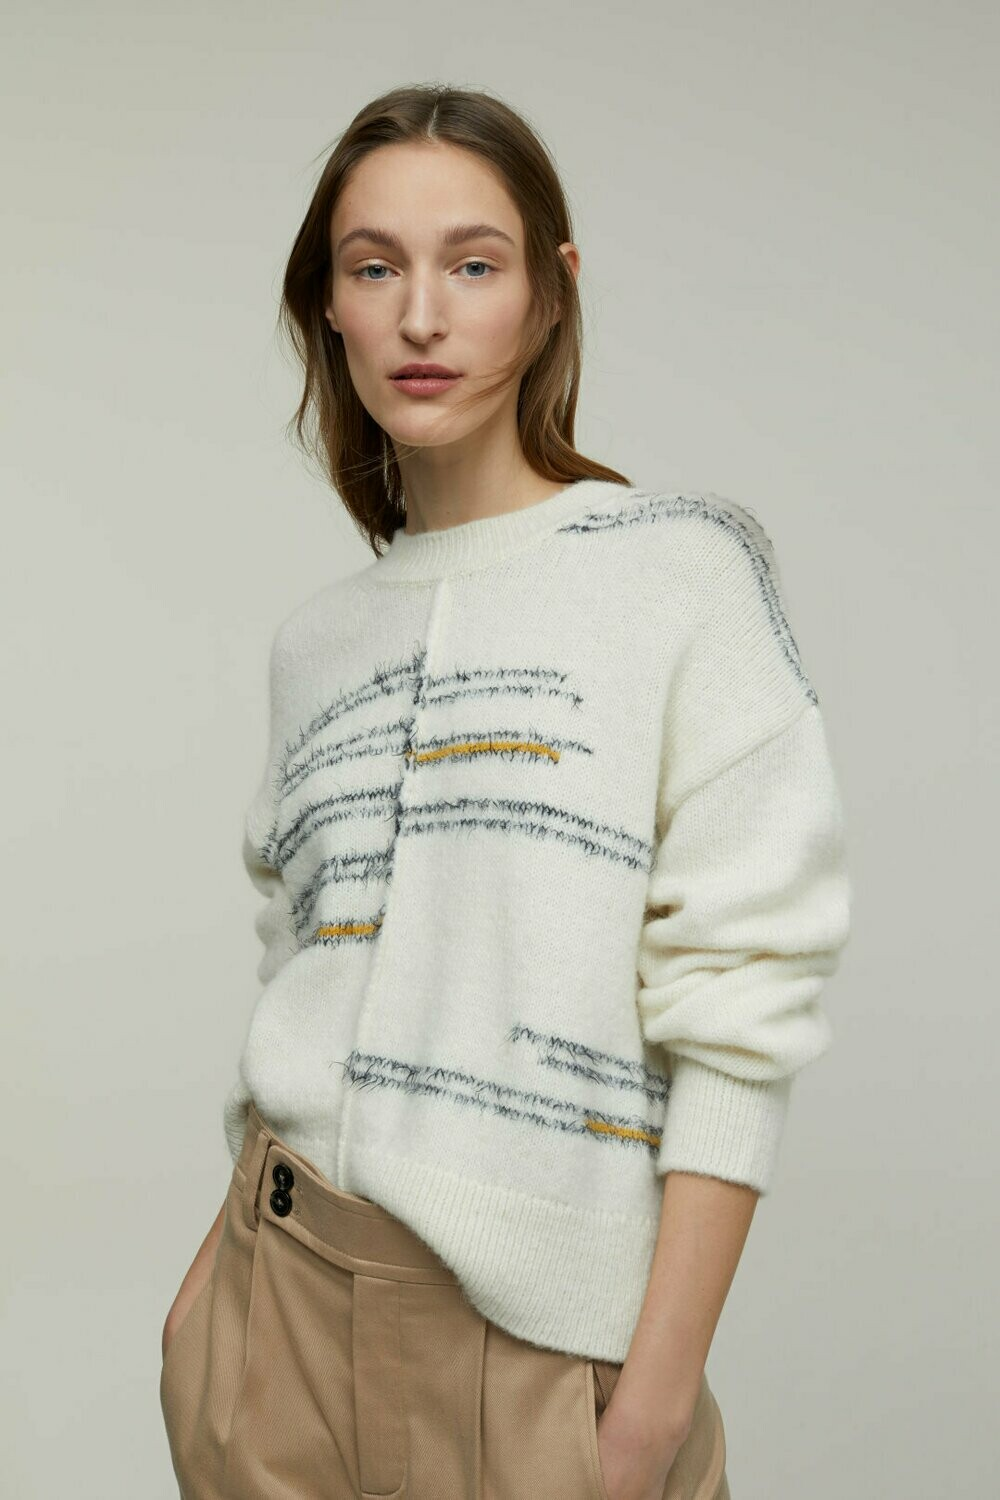 Horizontal Knit, CLOSED Official